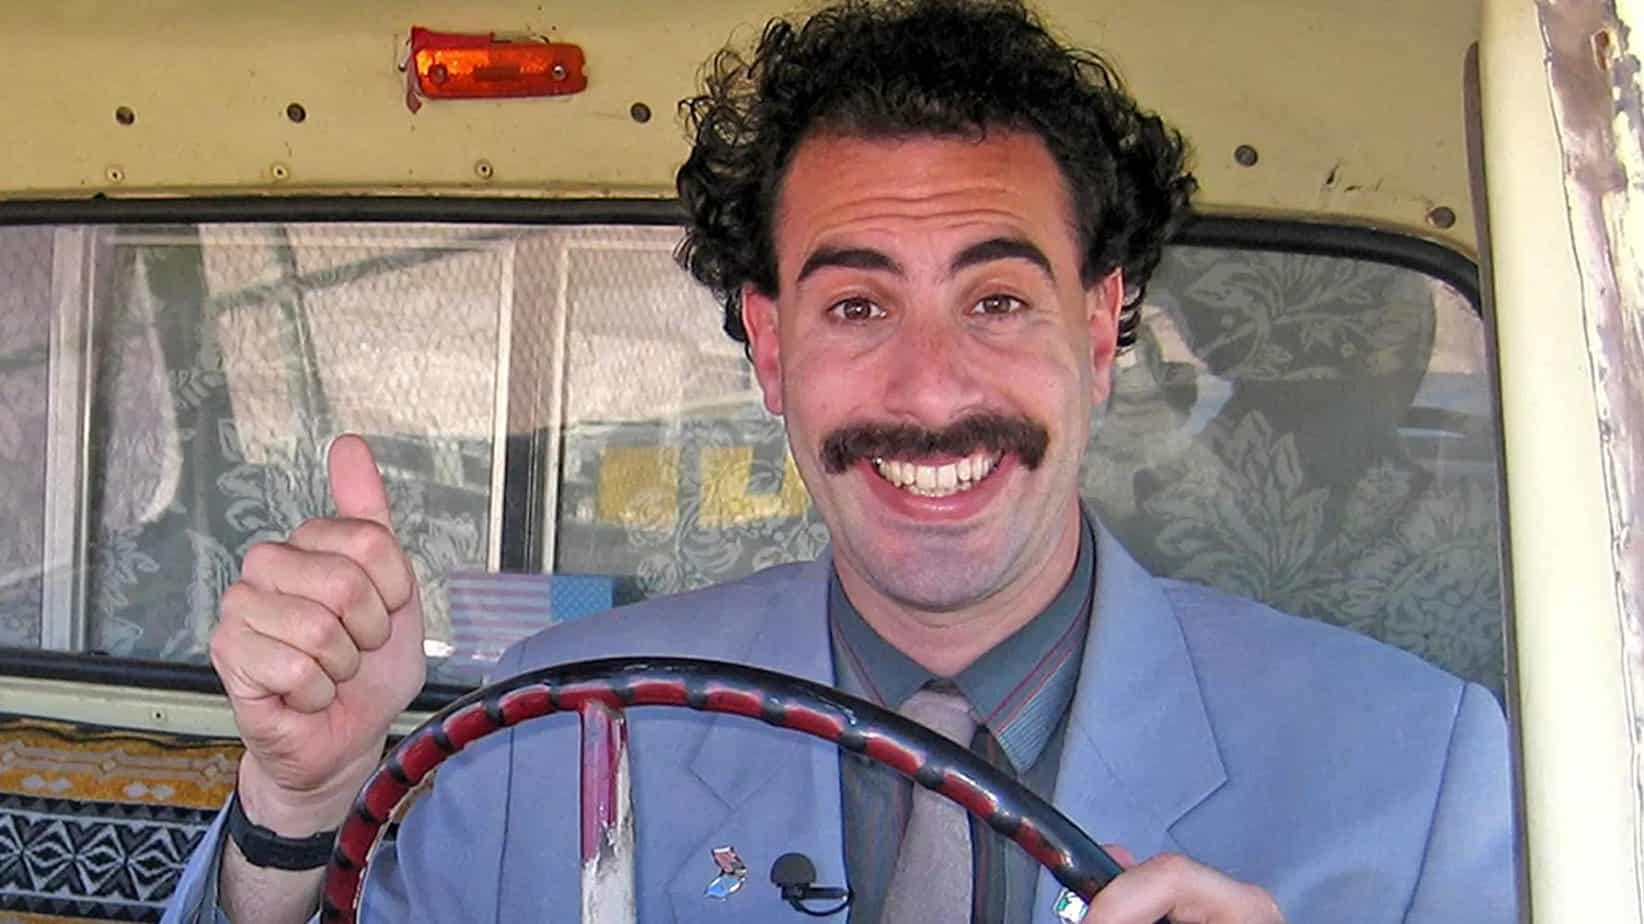 borat 2 movie quotes thumbs up in car